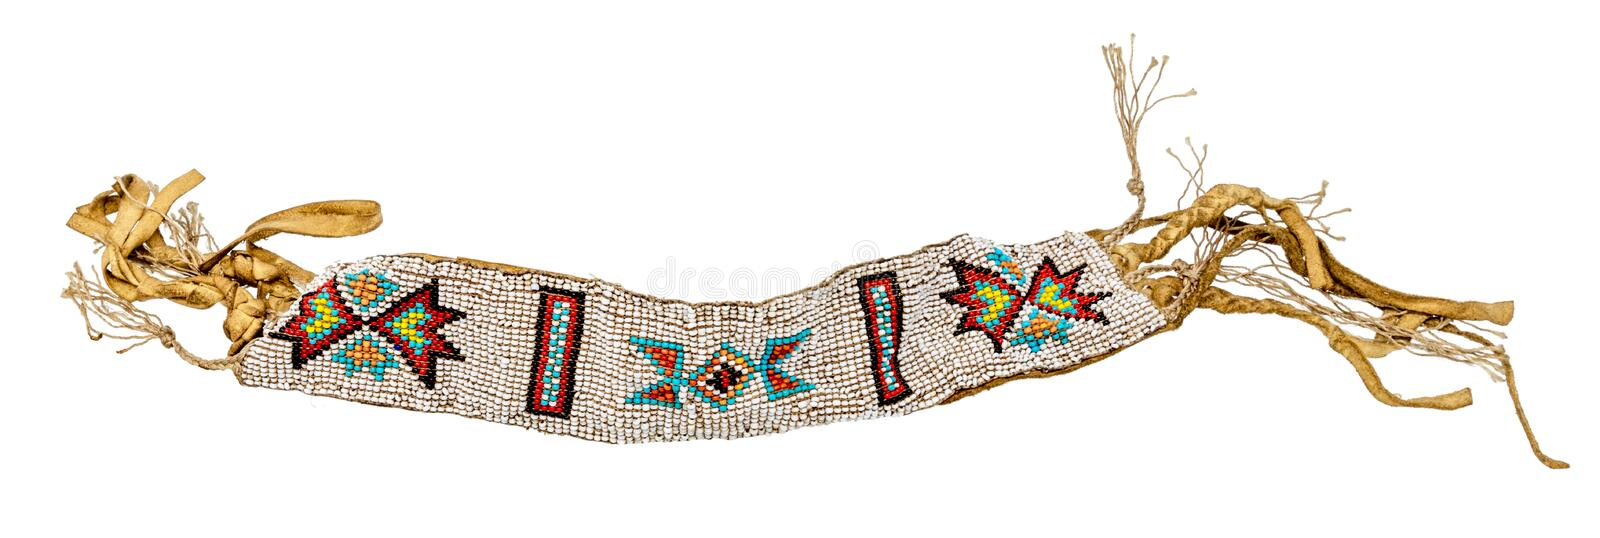 Old Native American bracelet sewn as jewelry / pearl weaving on leather royalty free stock images